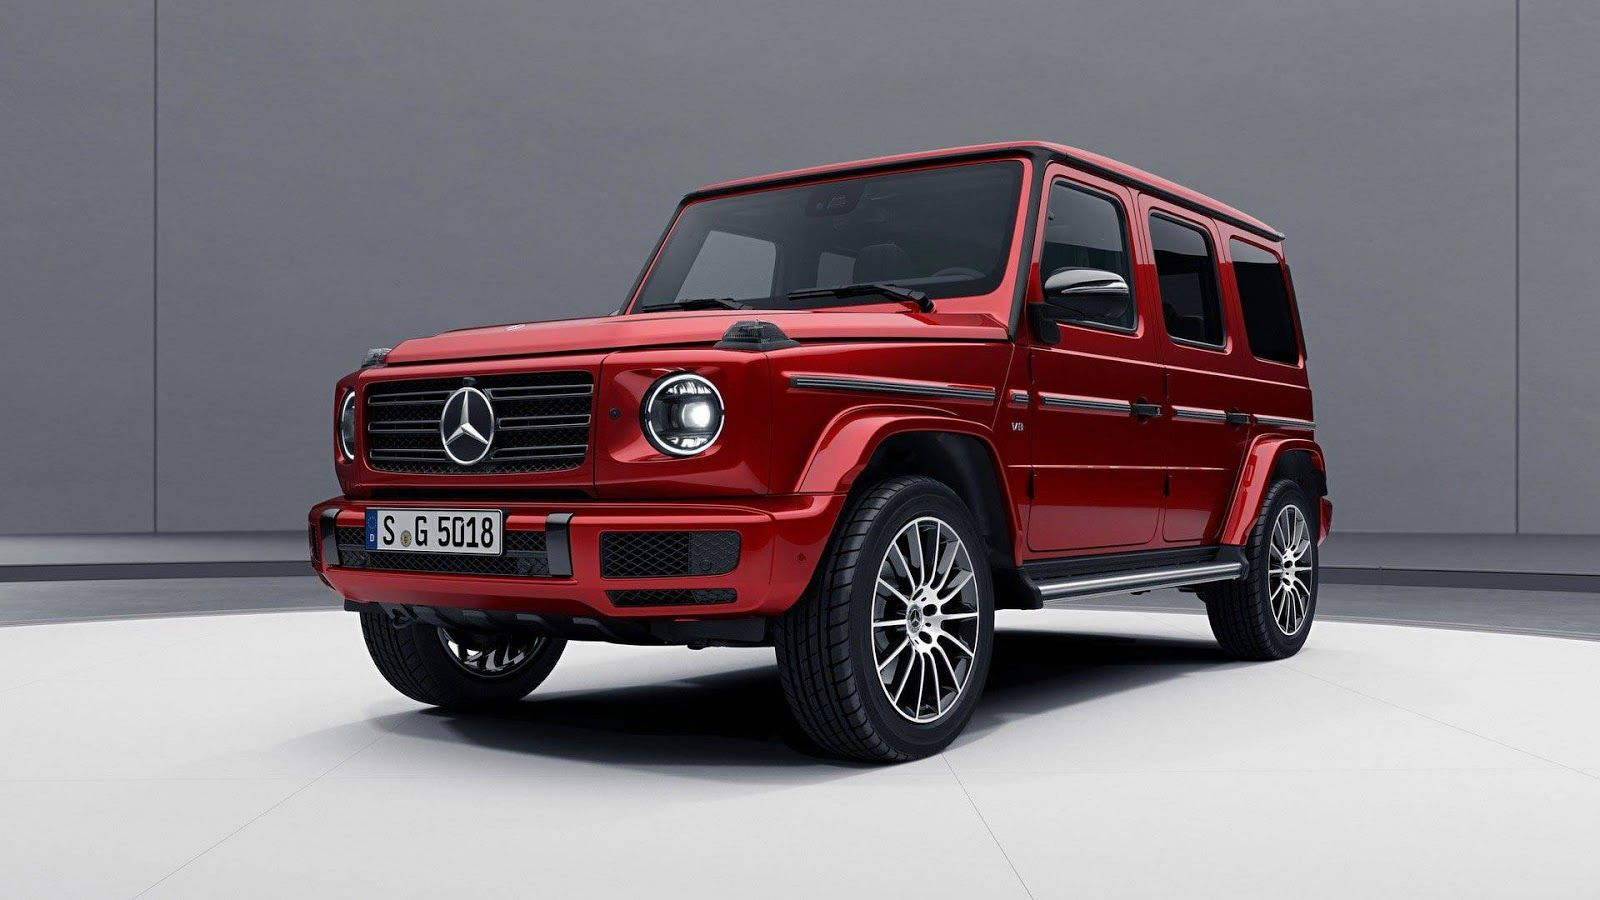 Mercedes Benz Gives New G Class A Low Key Night Package Mercedes